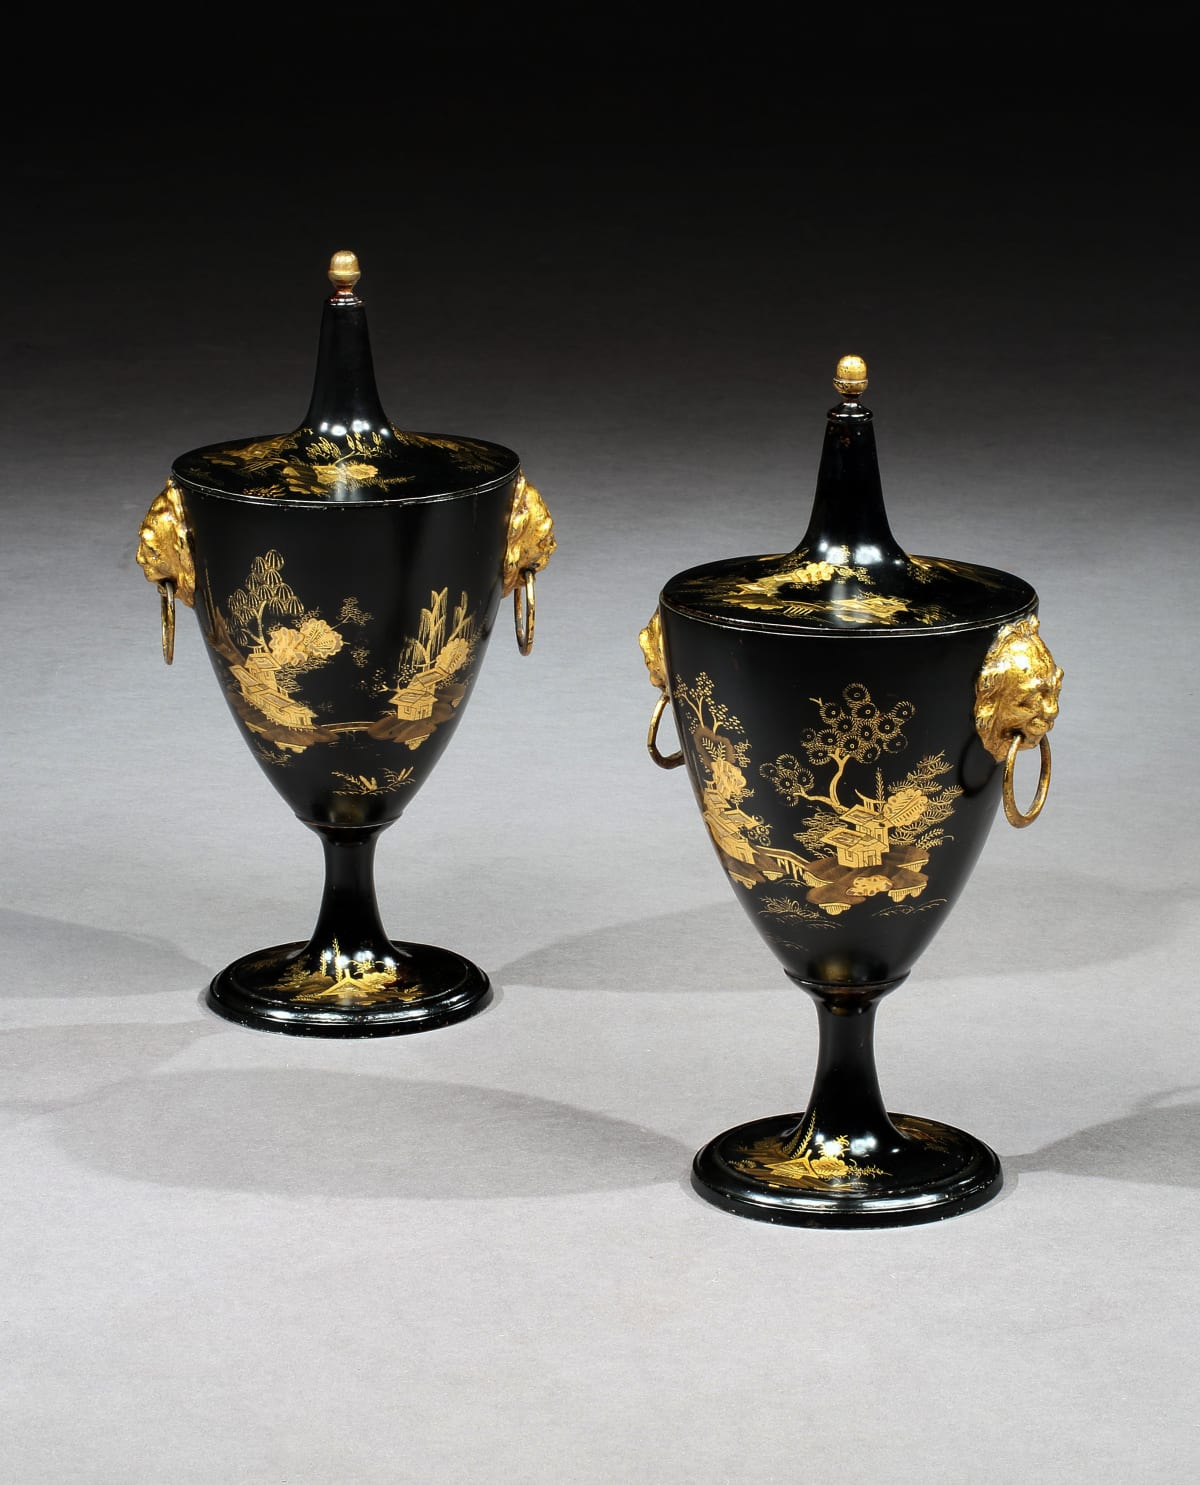 A PAIR OF GEORGE III JAPANNED CHESTNUT URNS, ENGLISH, CIRCA 1800